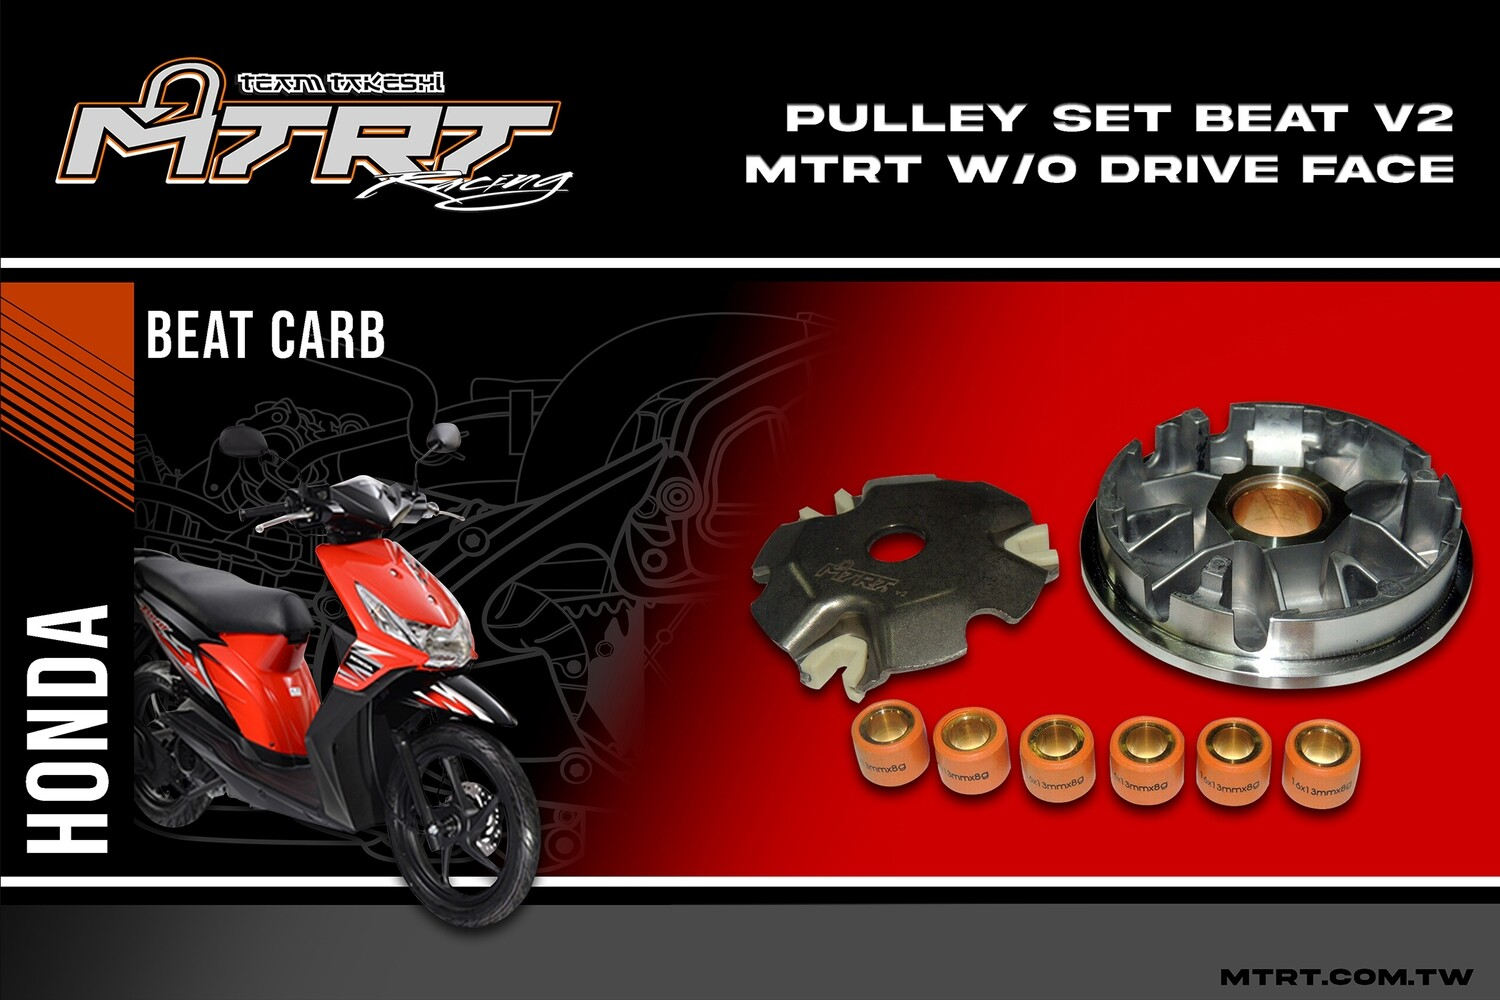 PULLEY SET BEAT/Zoomer V2 MTRT w/o drive face